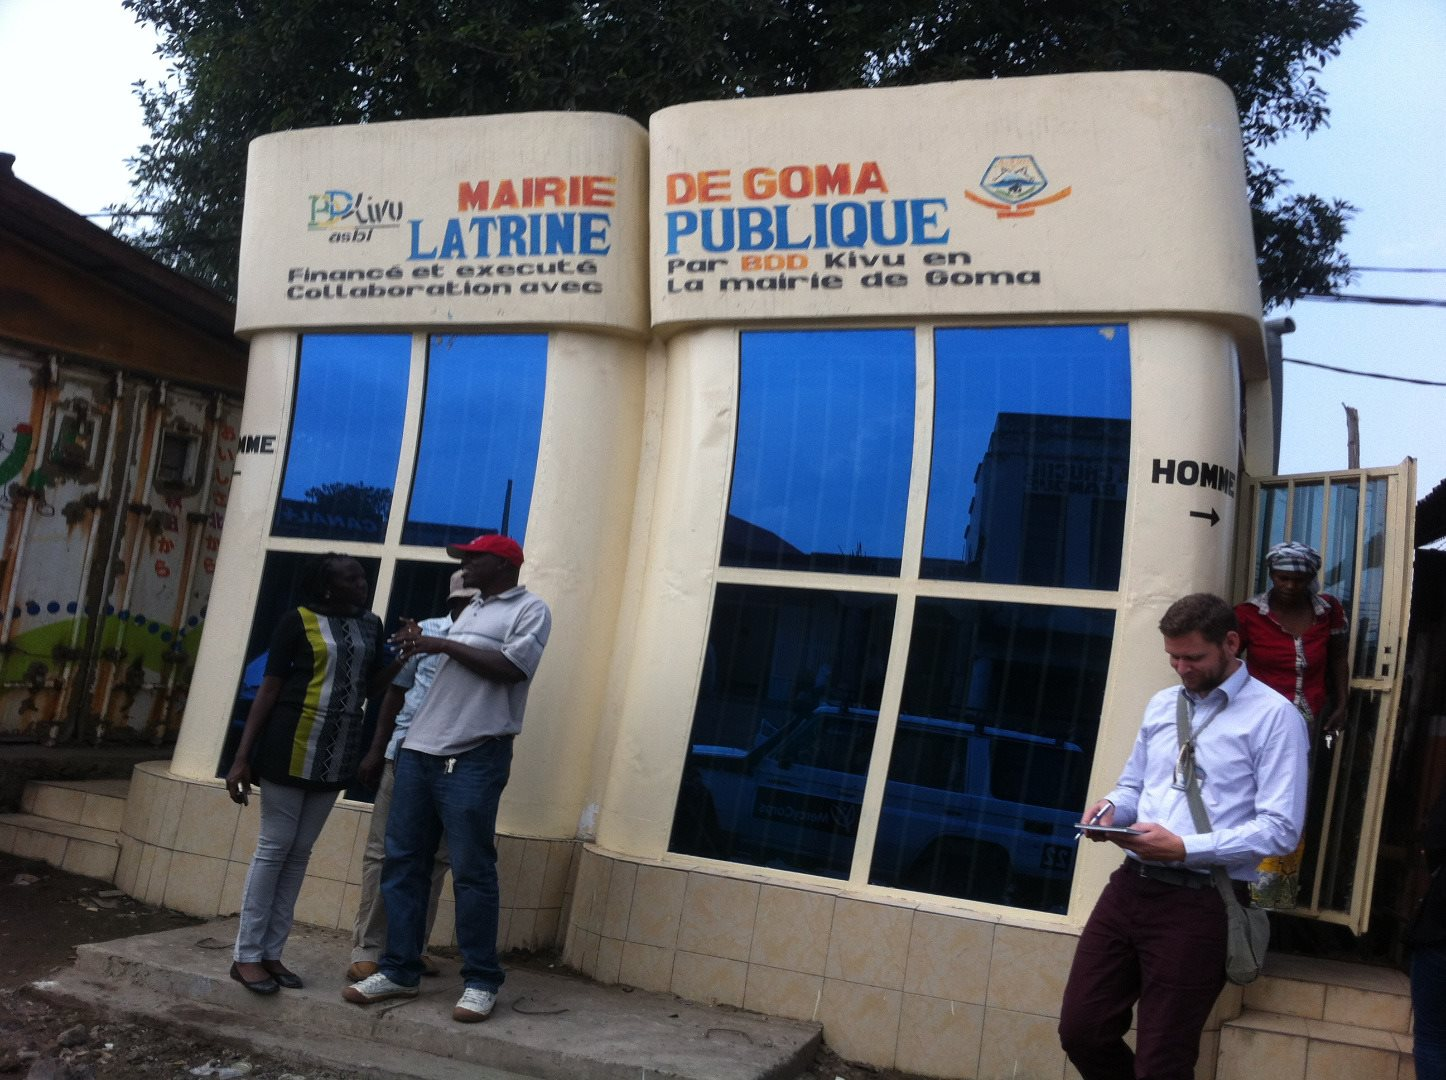 Public toilet in urban setting in DRC